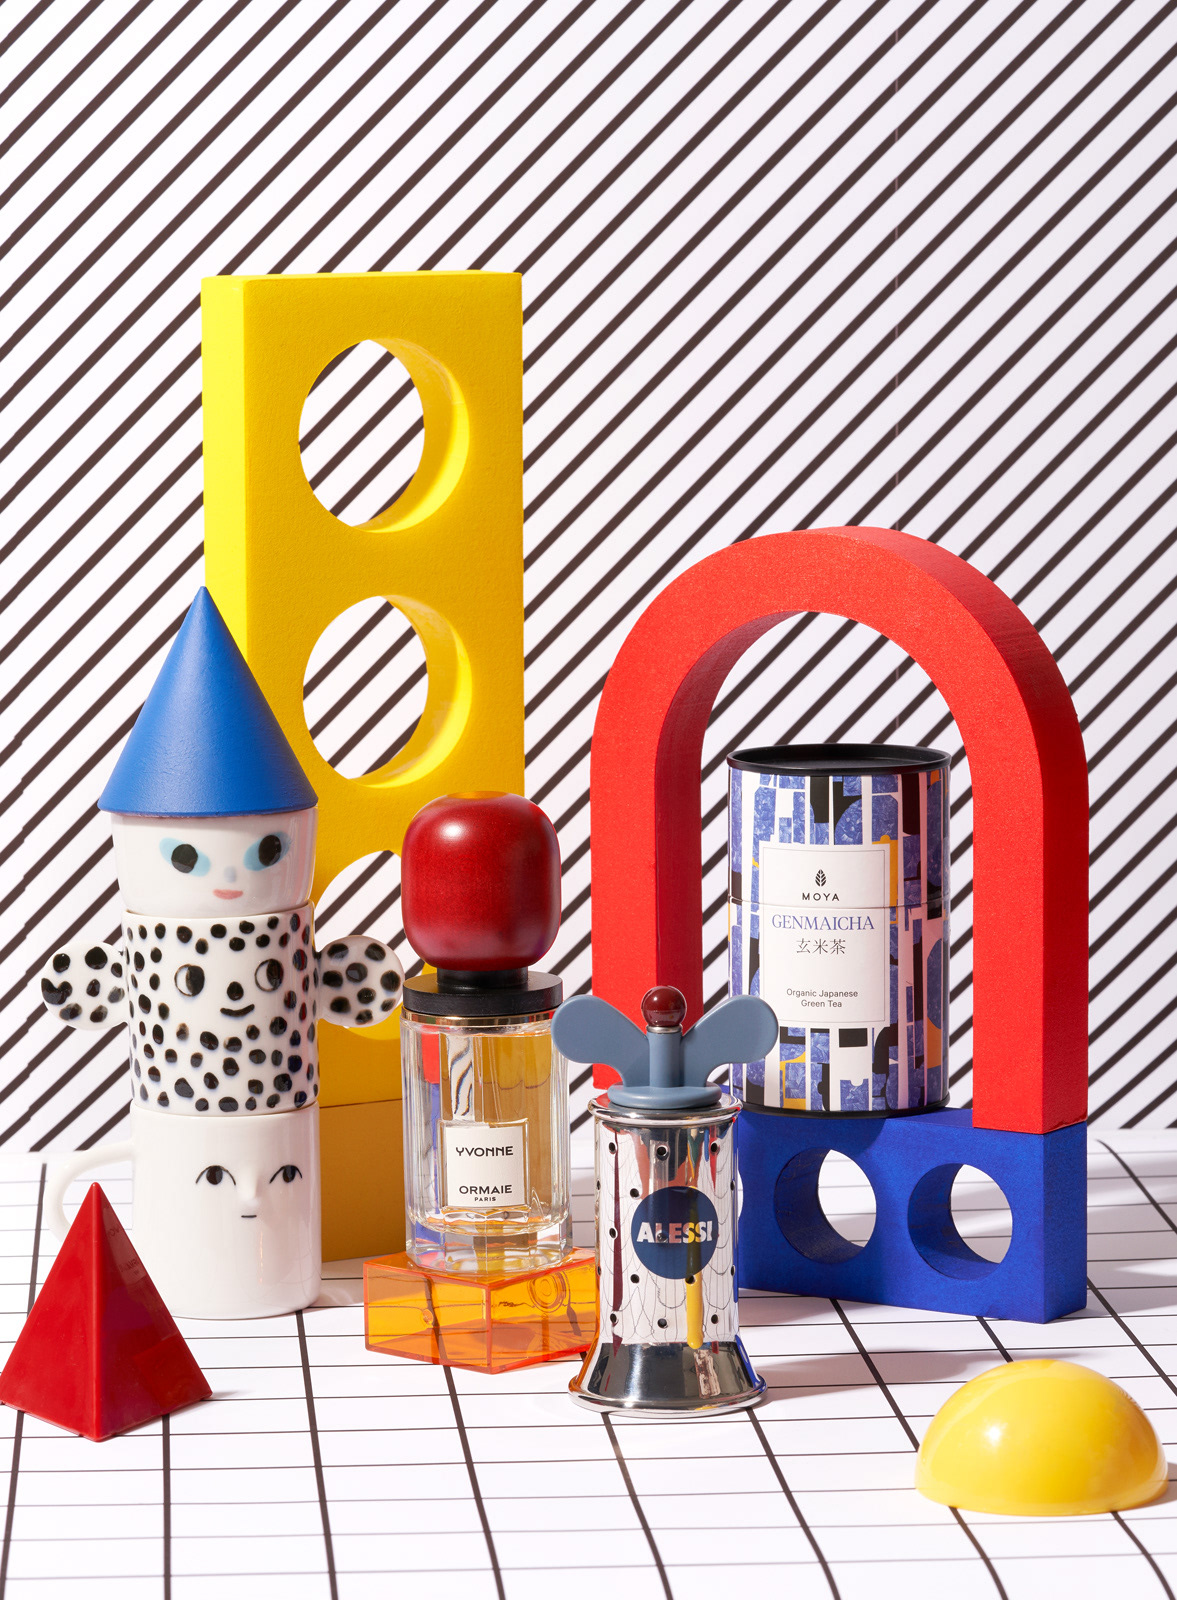 Memphis Design inspired still life gift guide with perfume, Alessi Grinder, Ceramics and tea